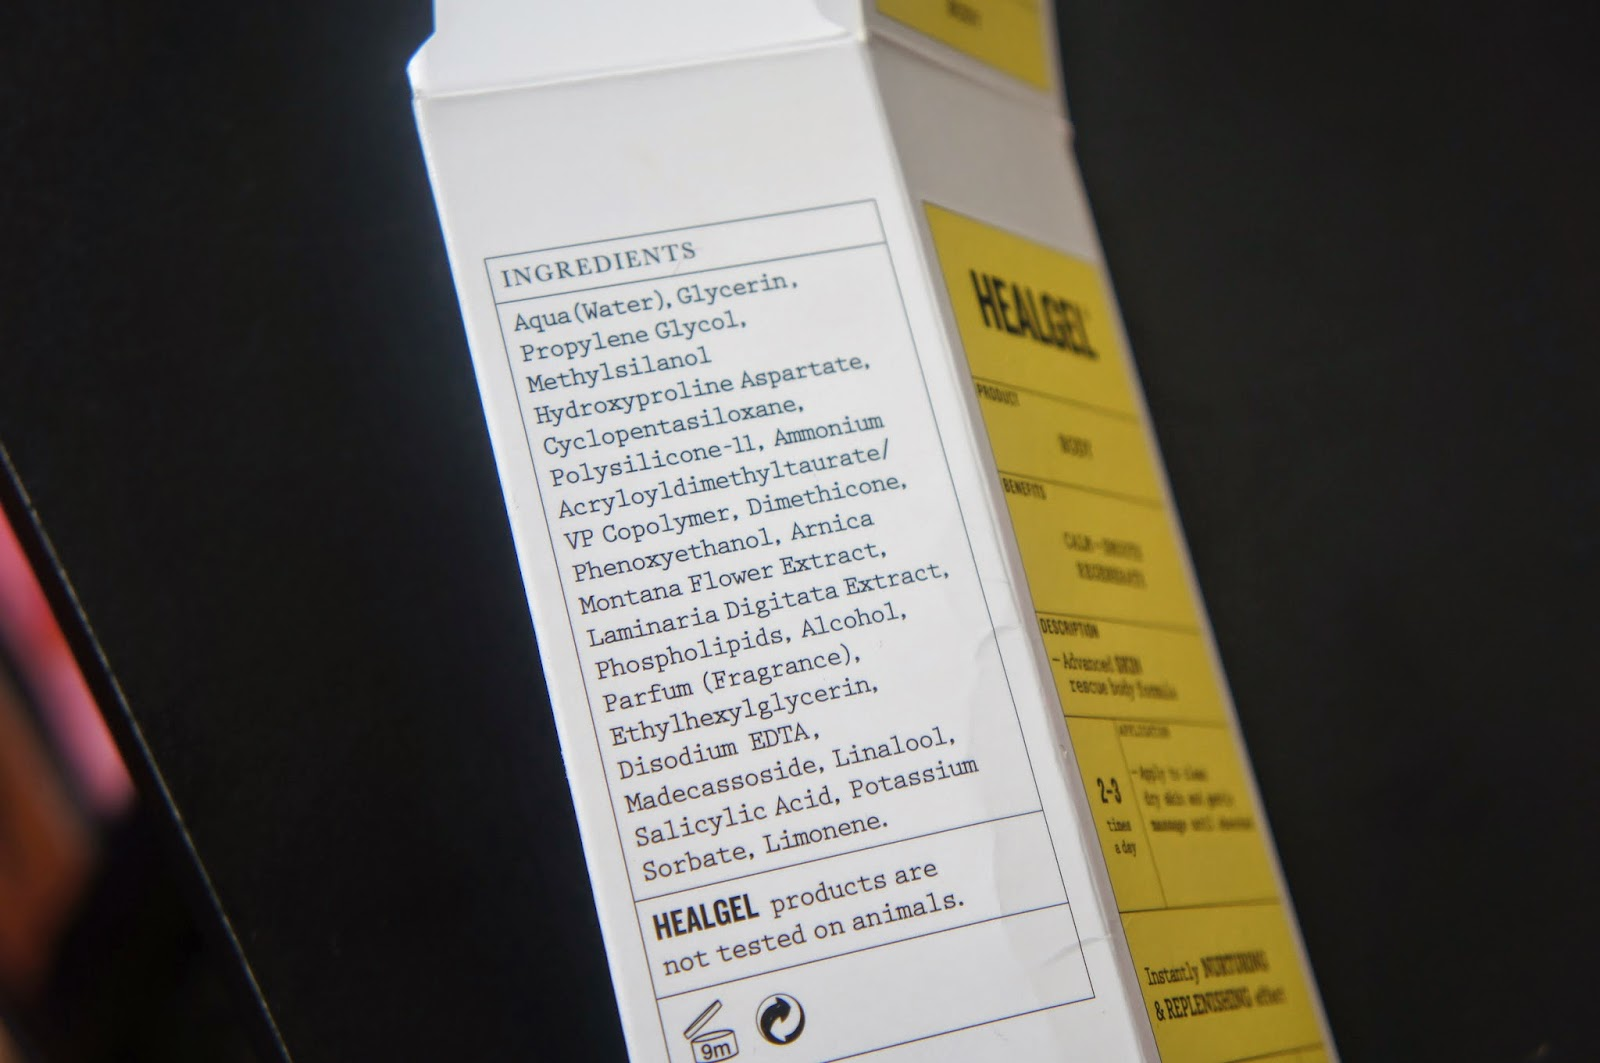 Healgel Body Ingredient List